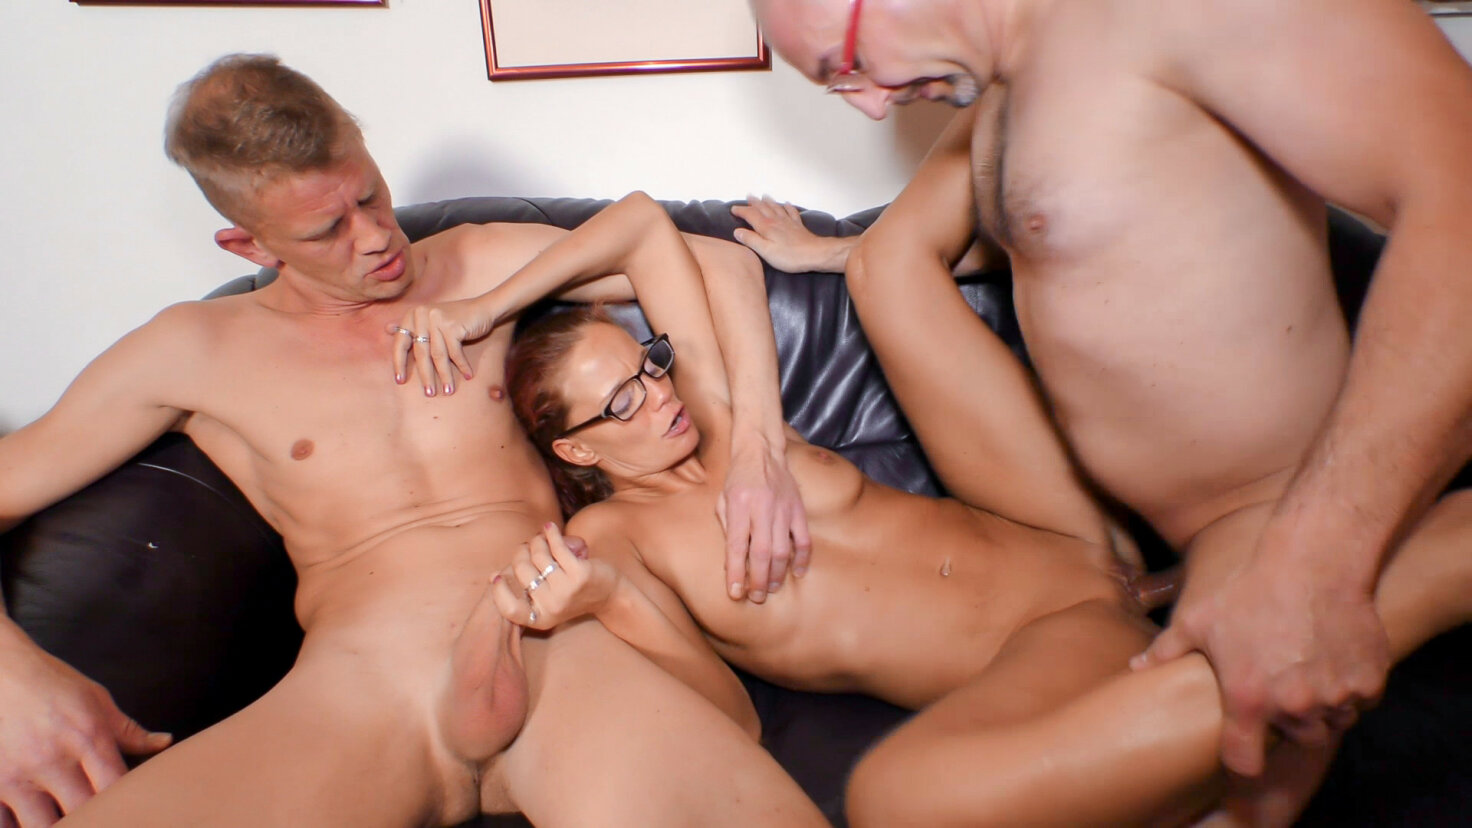 Mature German chick gets two cumloads on tits in steamy MMF threesome